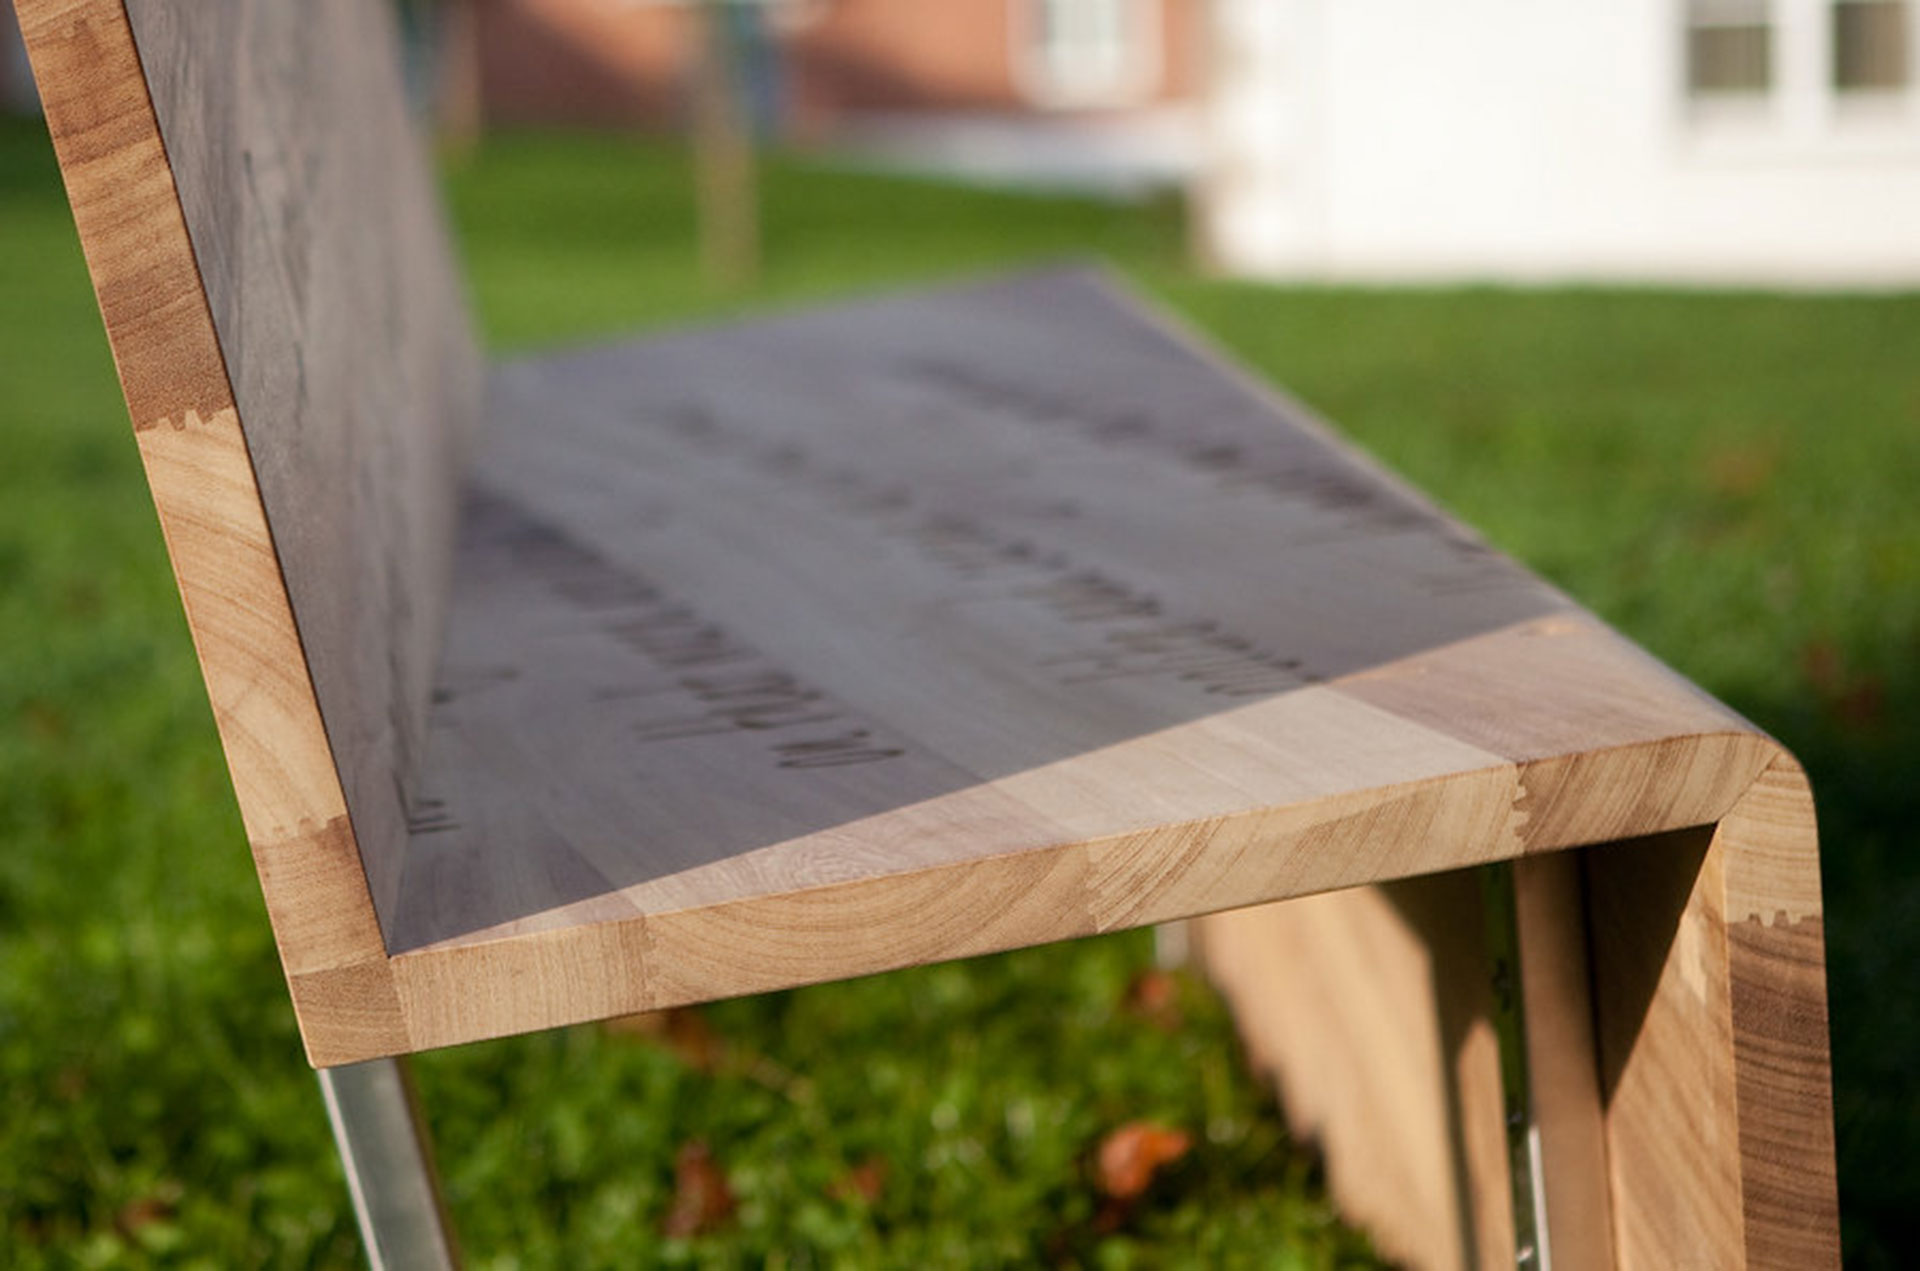 Oak bench with stainless steel bench frame